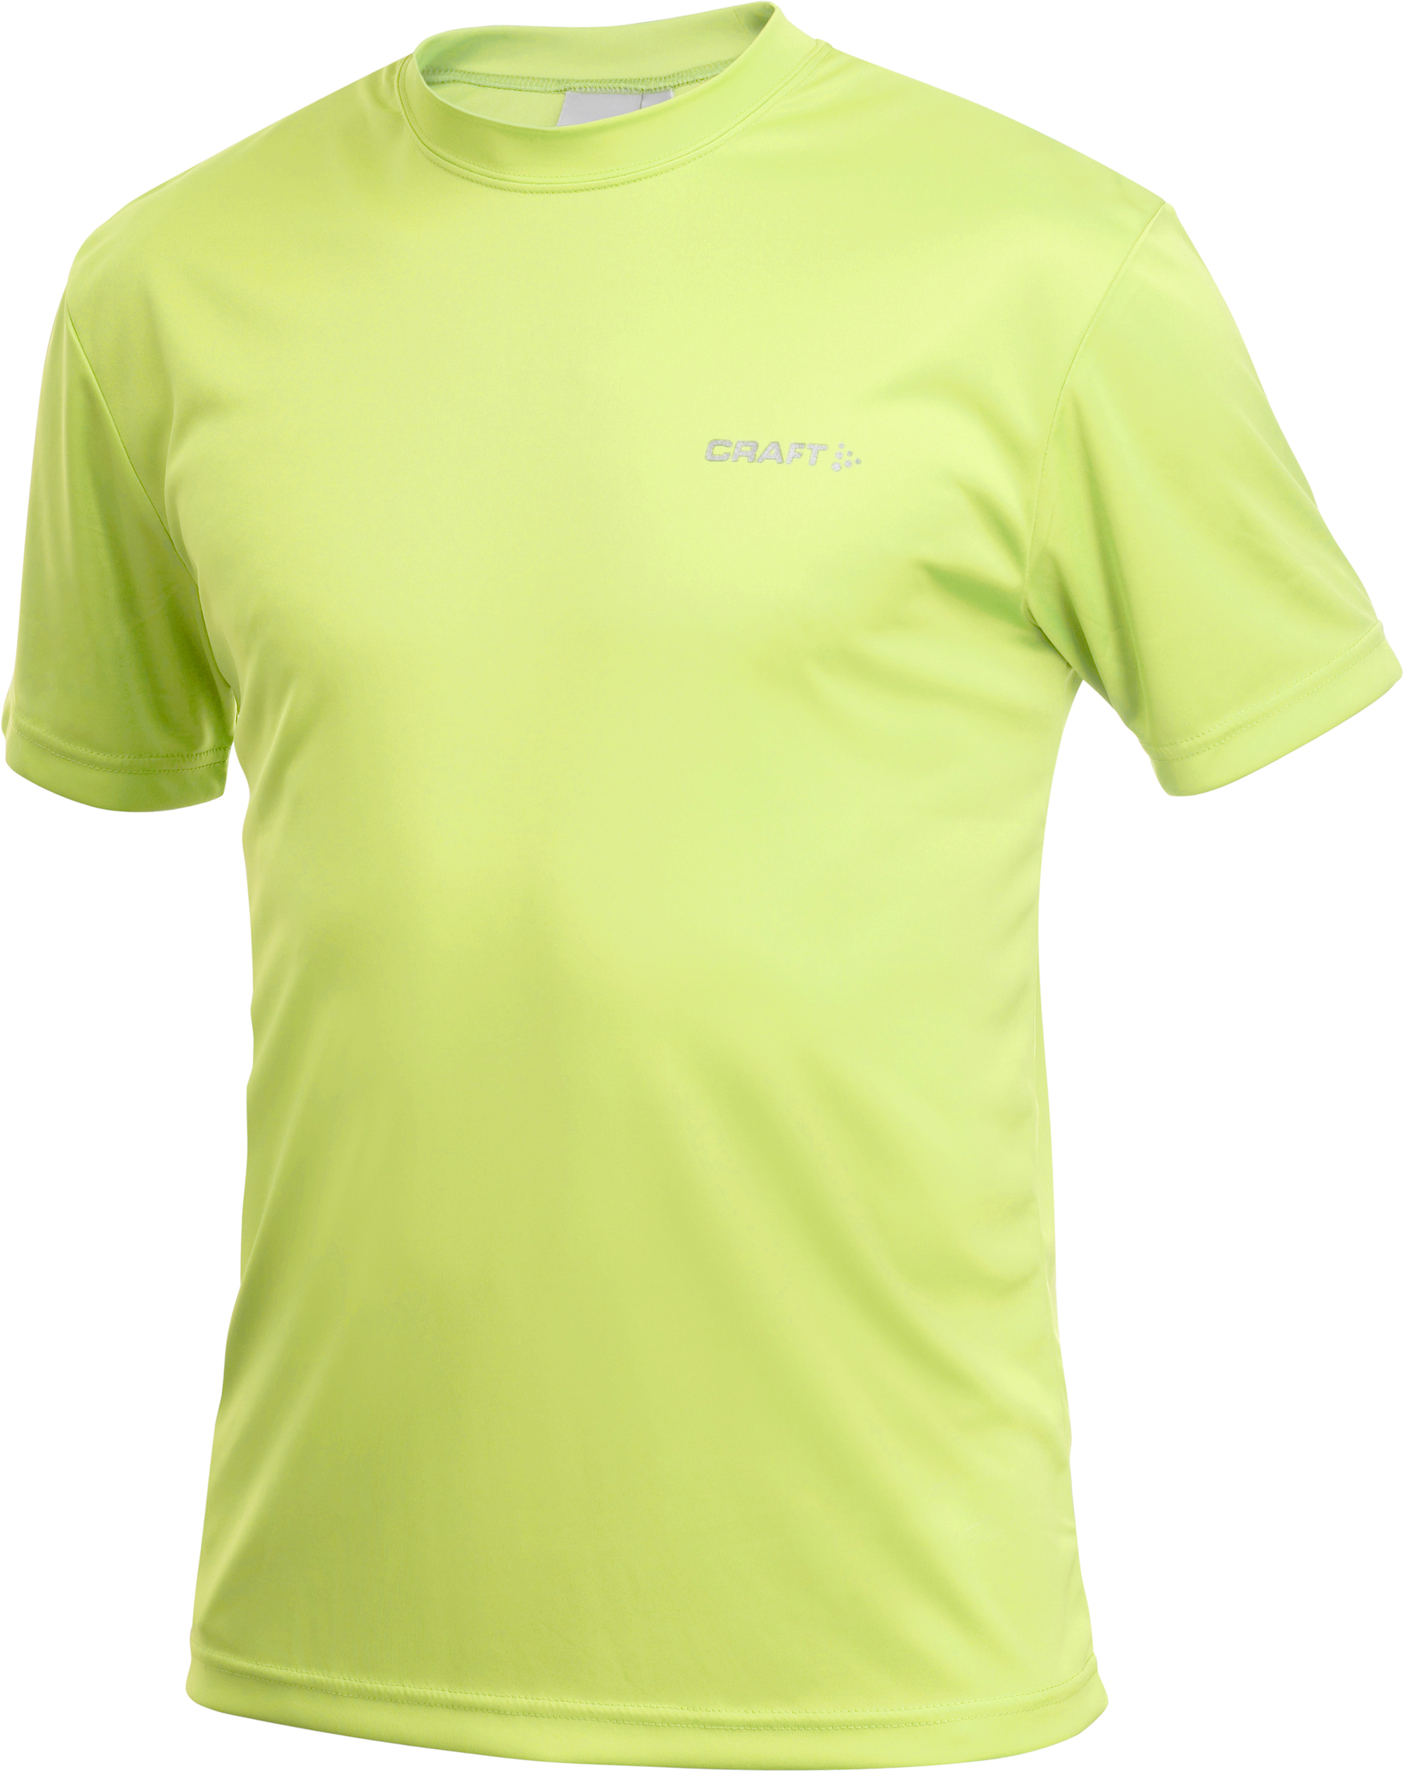 Craft Prime Tee men lizard 3xl lizard